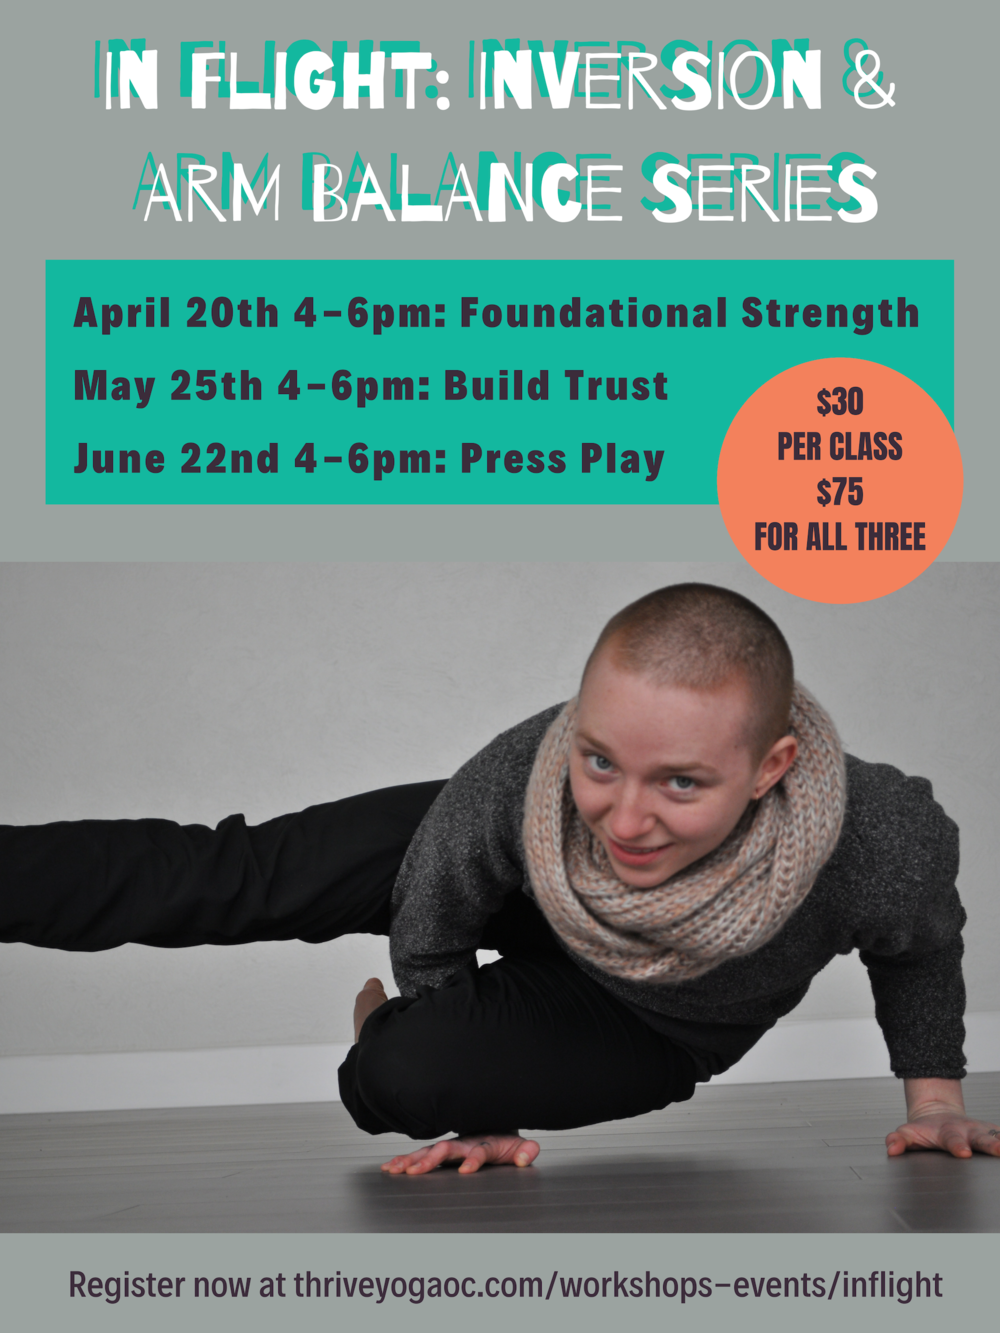 Are you ready to take your asana practice up a level? Join Sage as they guide you through practices of building foundational strength, trust and provide space to play with going upside down and finding balance. Each session will include a strong yoga practice with focus on techniques to navigate breath as we move into harder poses. While this series may be challenging, it is open to all levels and abilities.